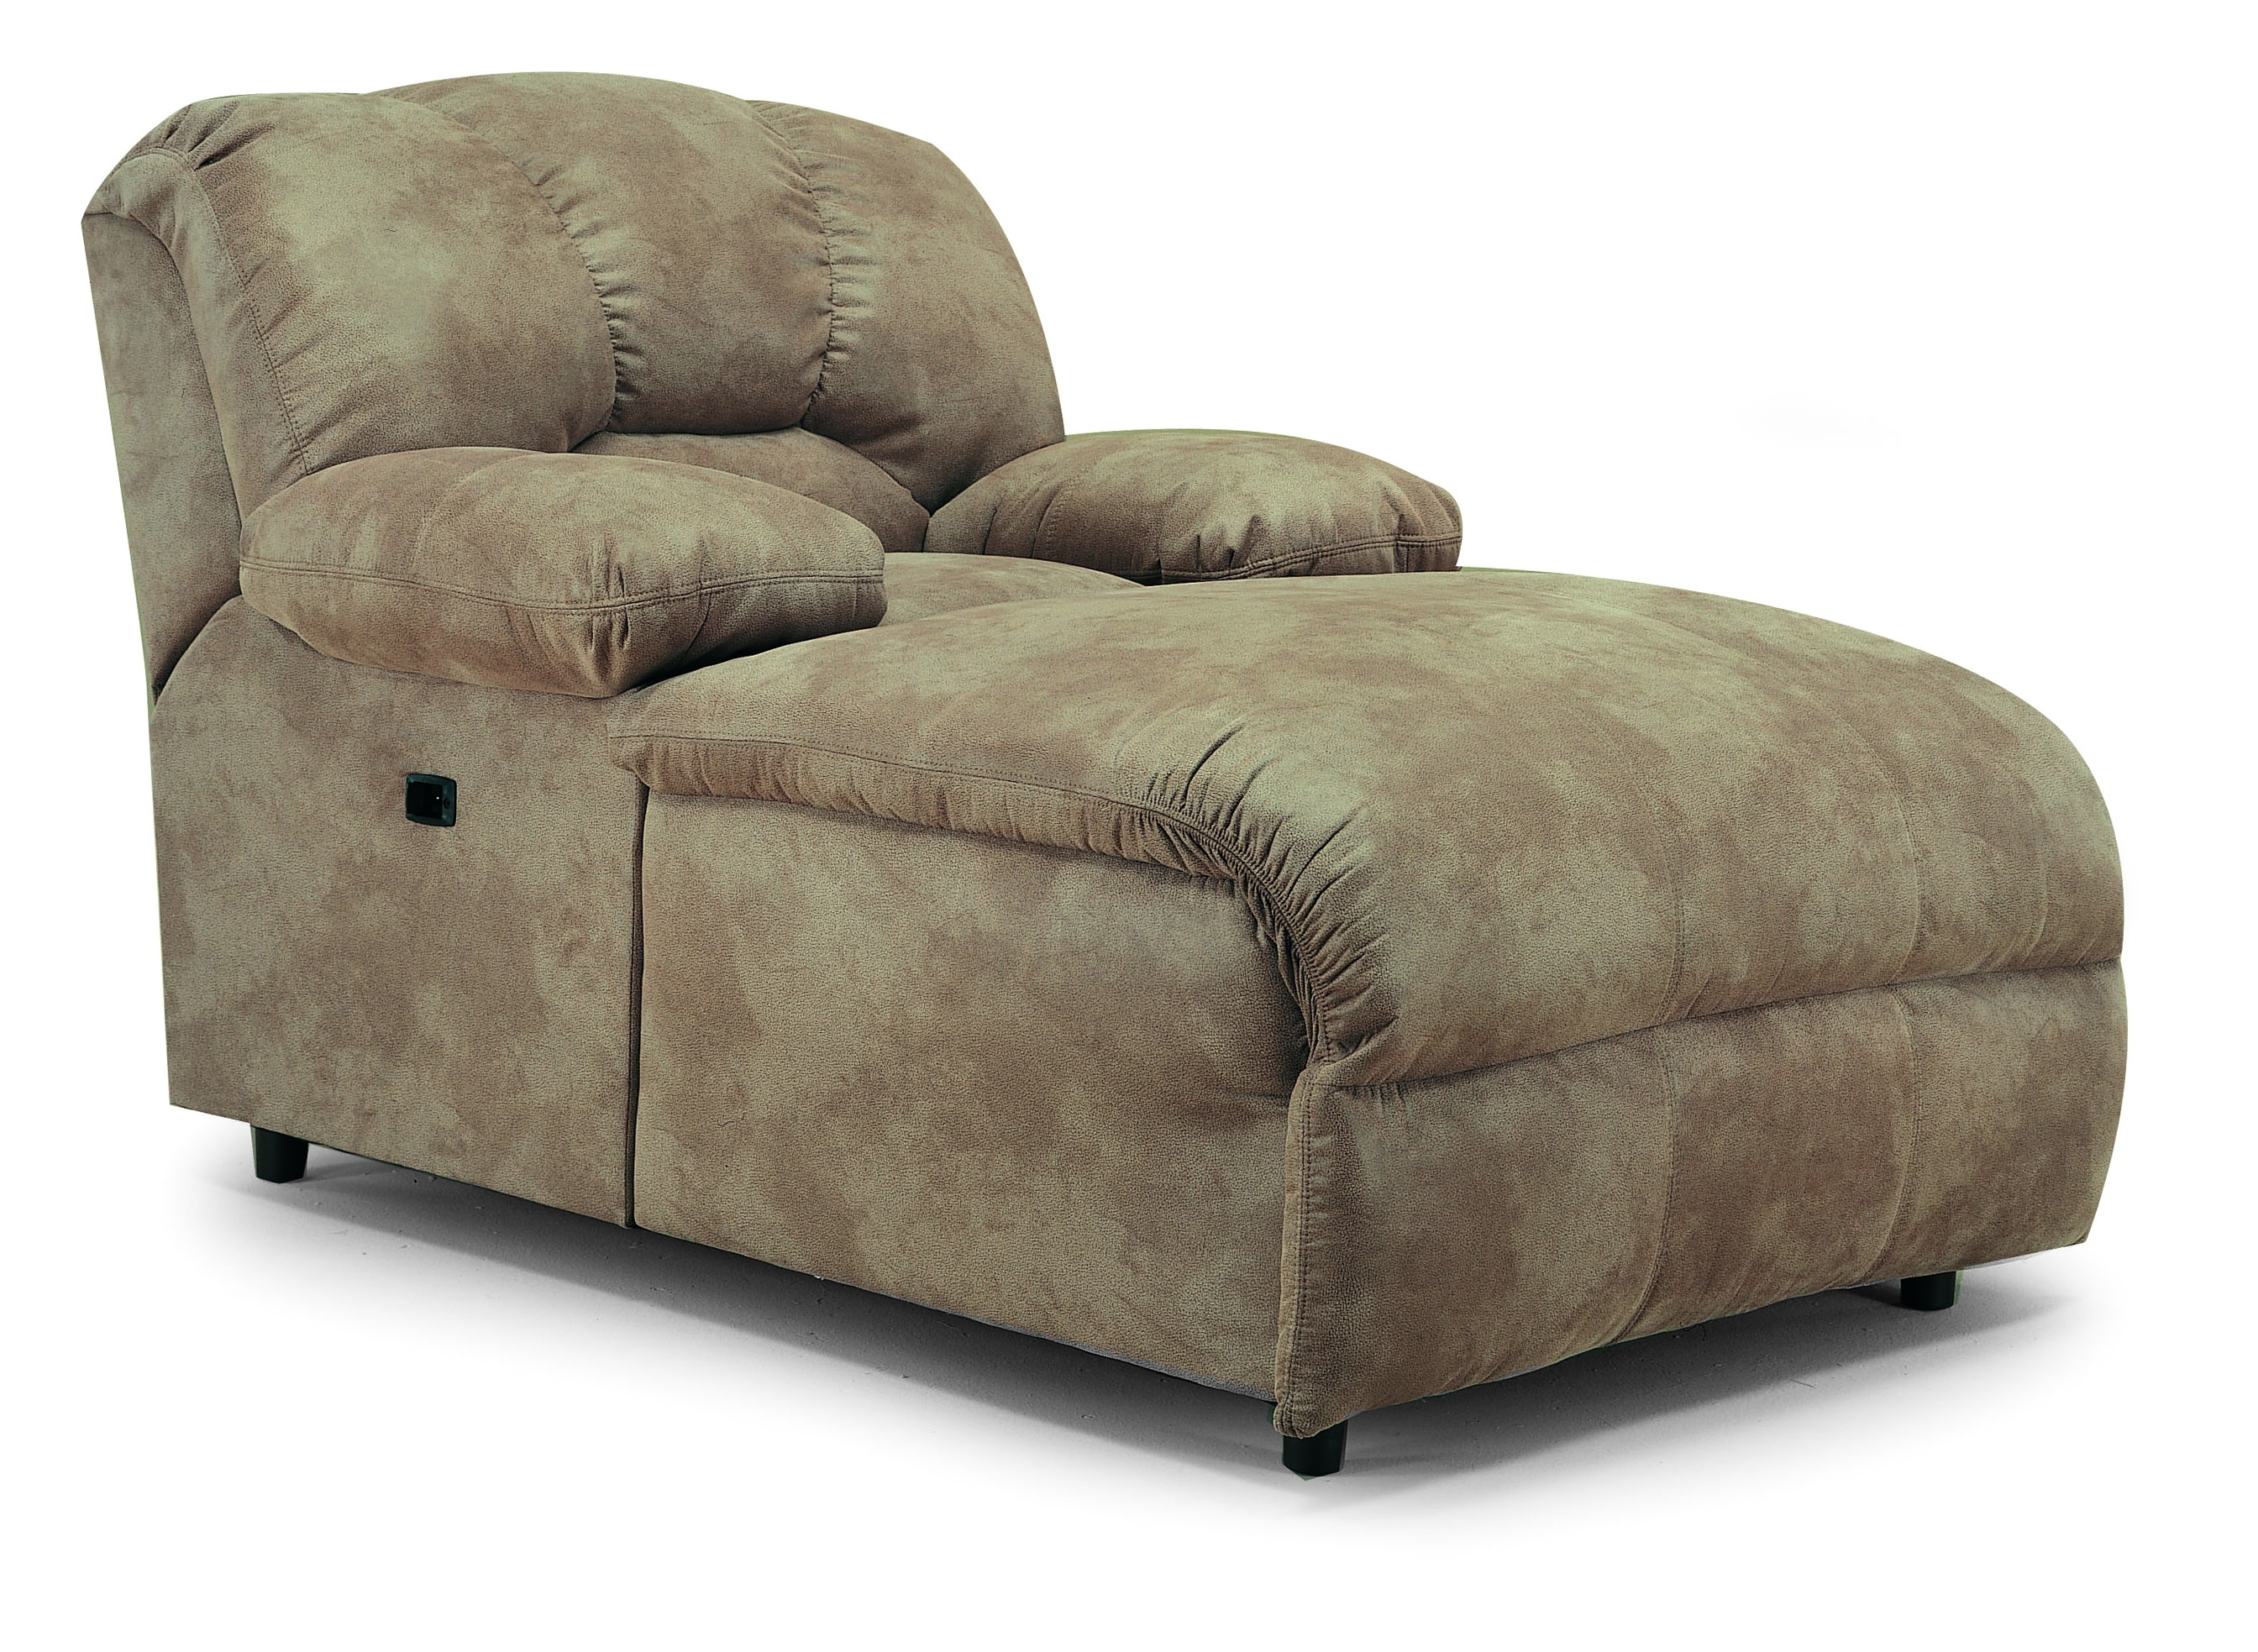 Widely Used Popular Of Reclining Chaise Lounge With Recliner Chaise Lounge My Within Chaise Recliners (View 15 of 15)